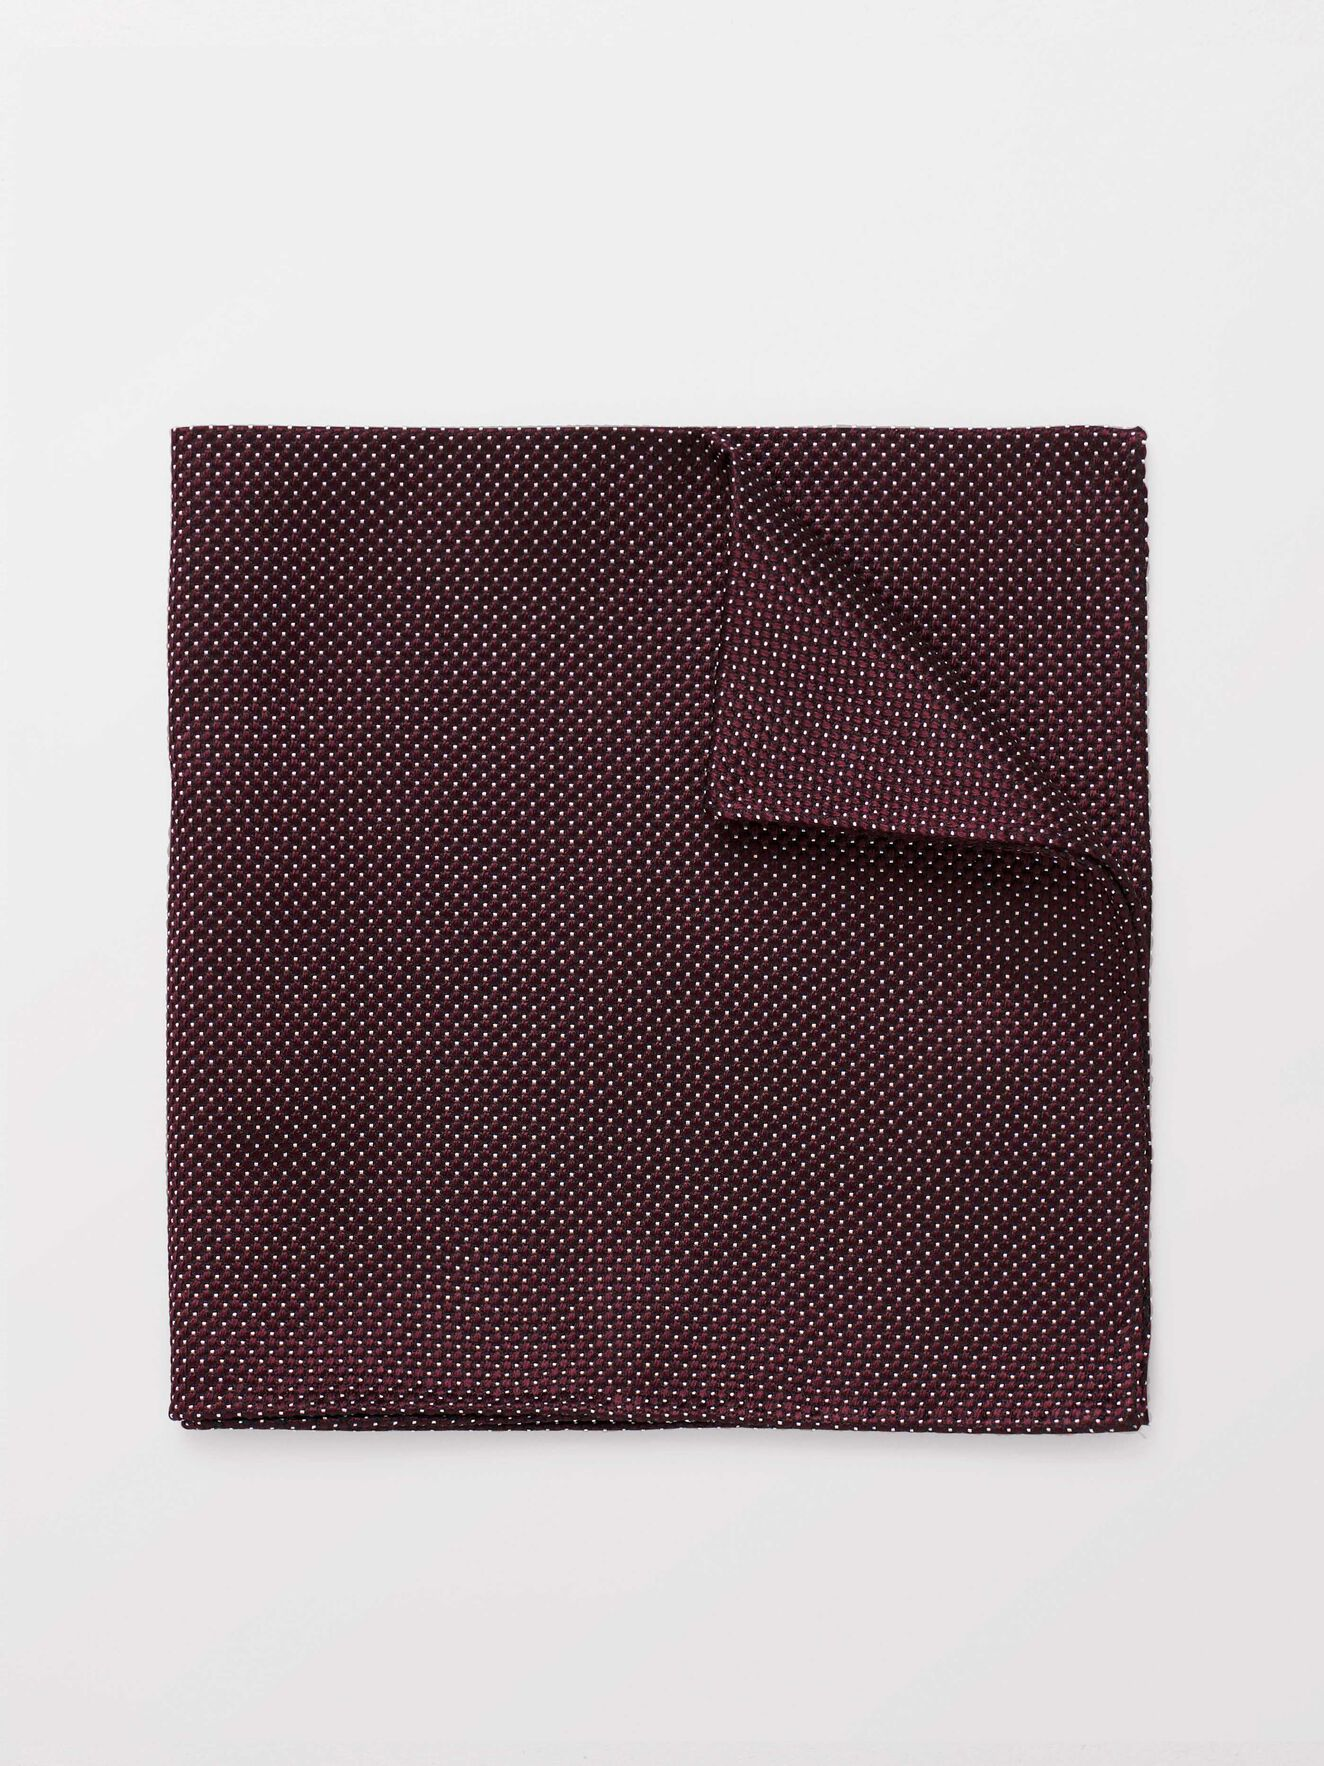 Peia Handkerchief in Noon Plum from Tiger of Sweden